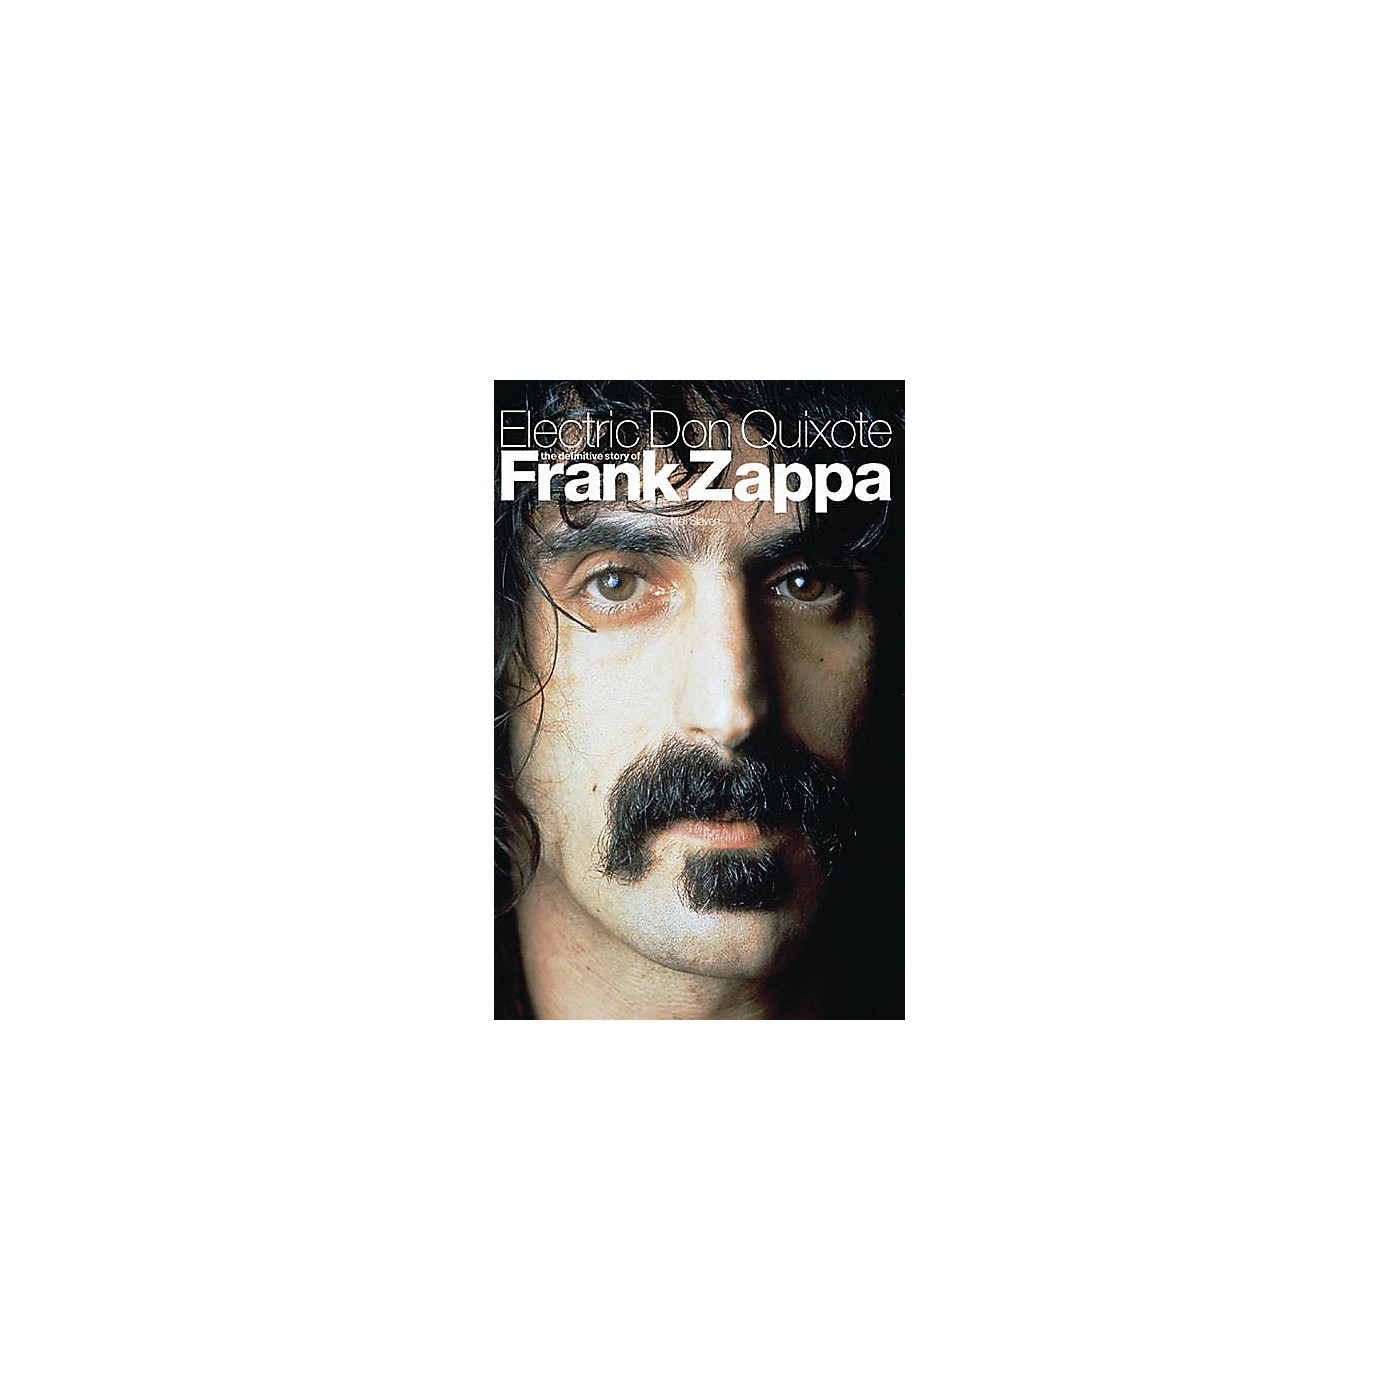 Omnibus Electric Don Quixote (The Definitive Story of Frank Zappa) Omnibus Press Series Softcover thumbnail